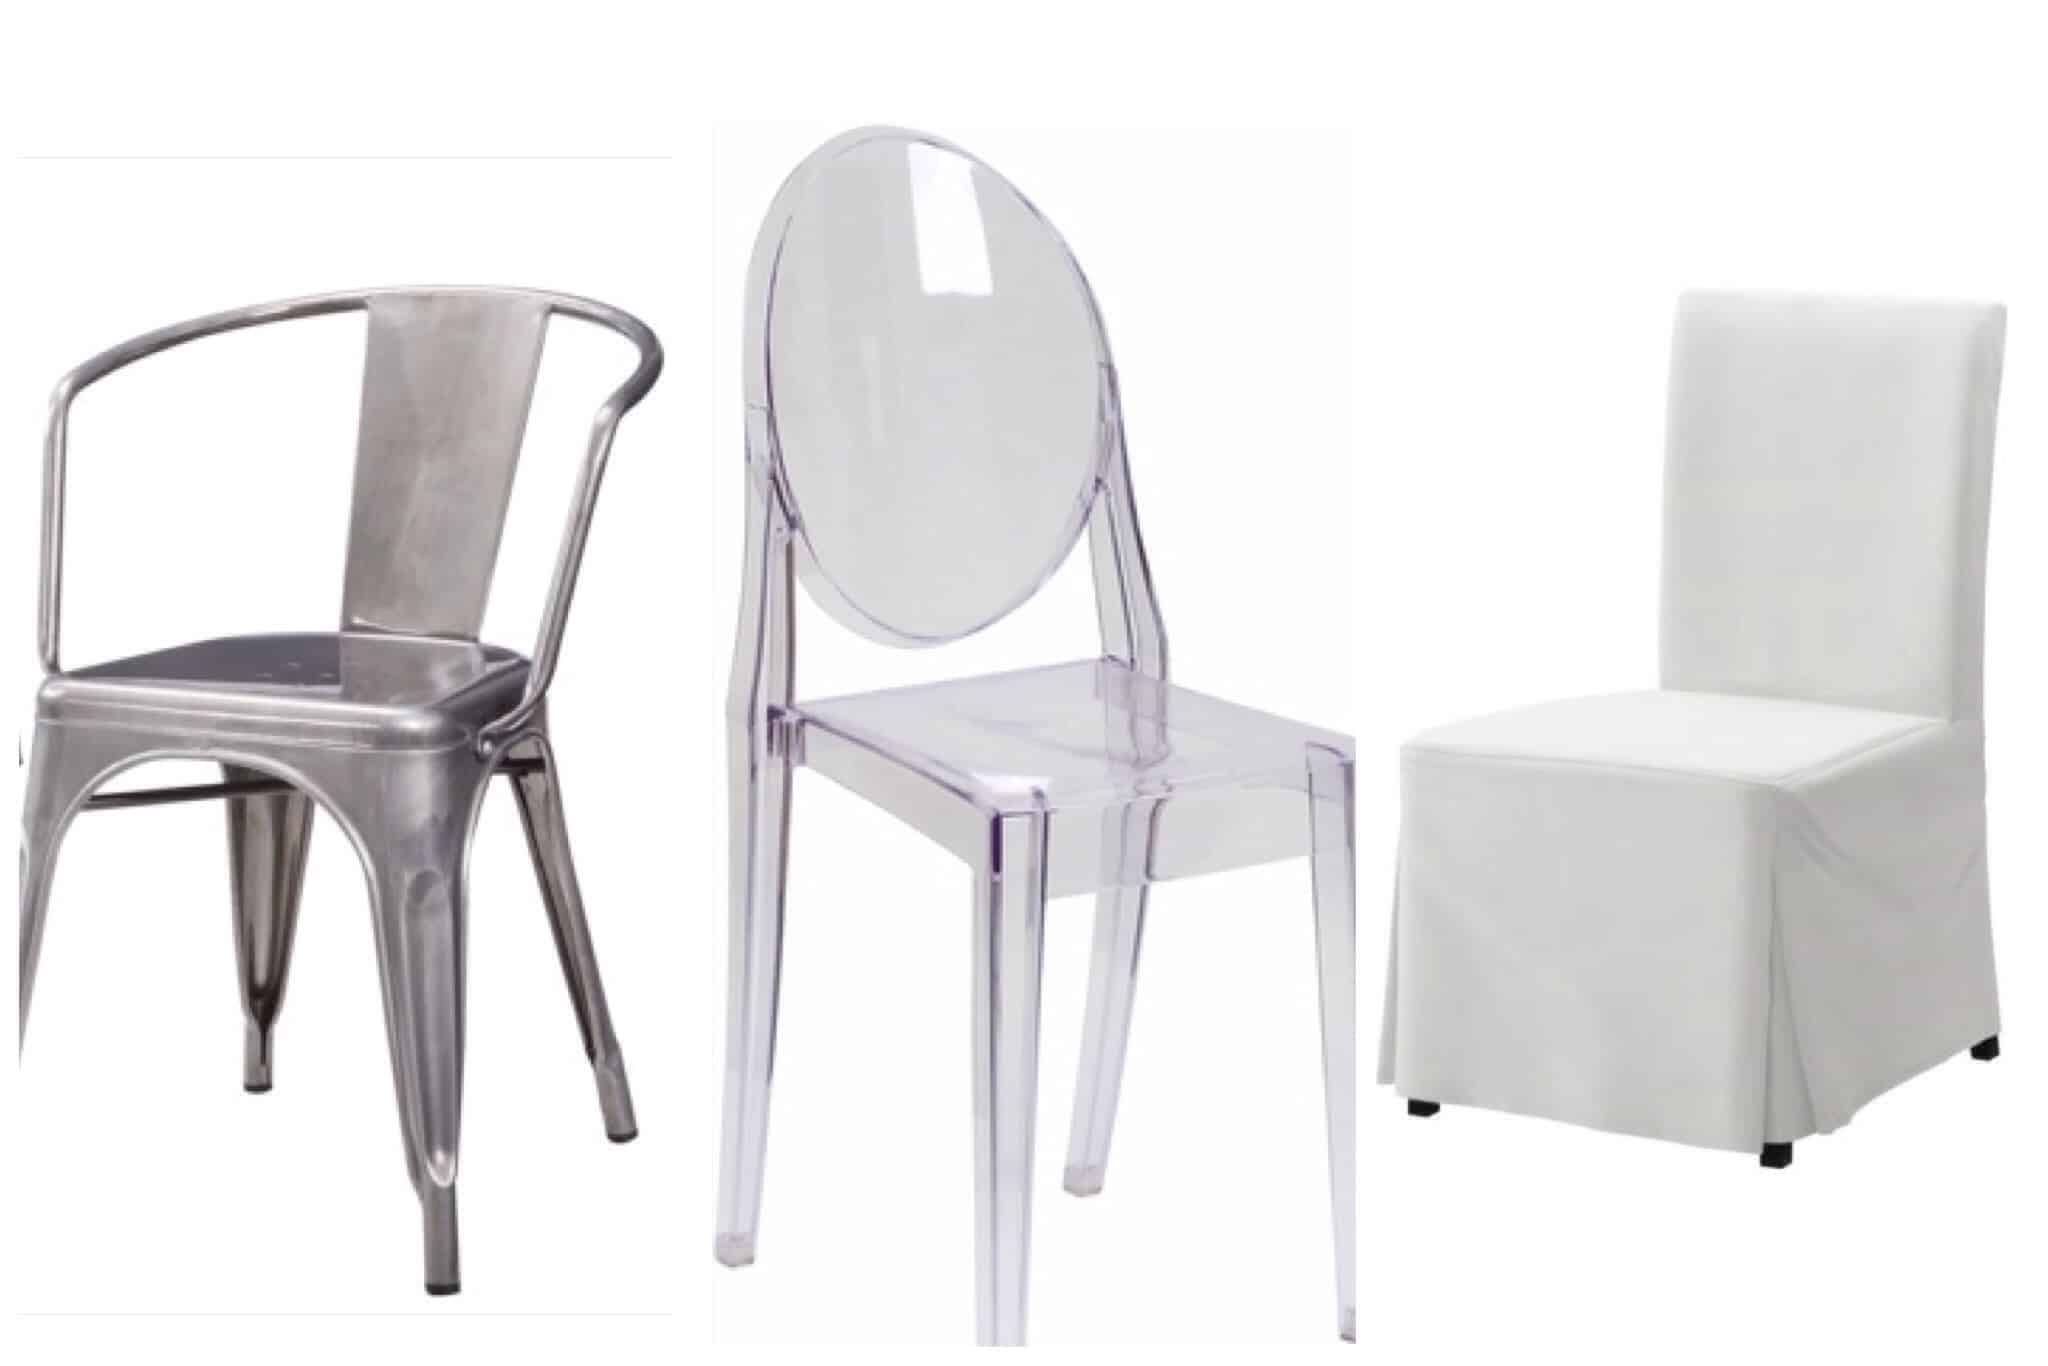 Phenomenal With A Little Help From My Friends A Dining Chair Dilemma Gamerscity Chair Design For Home Gamerscityorg